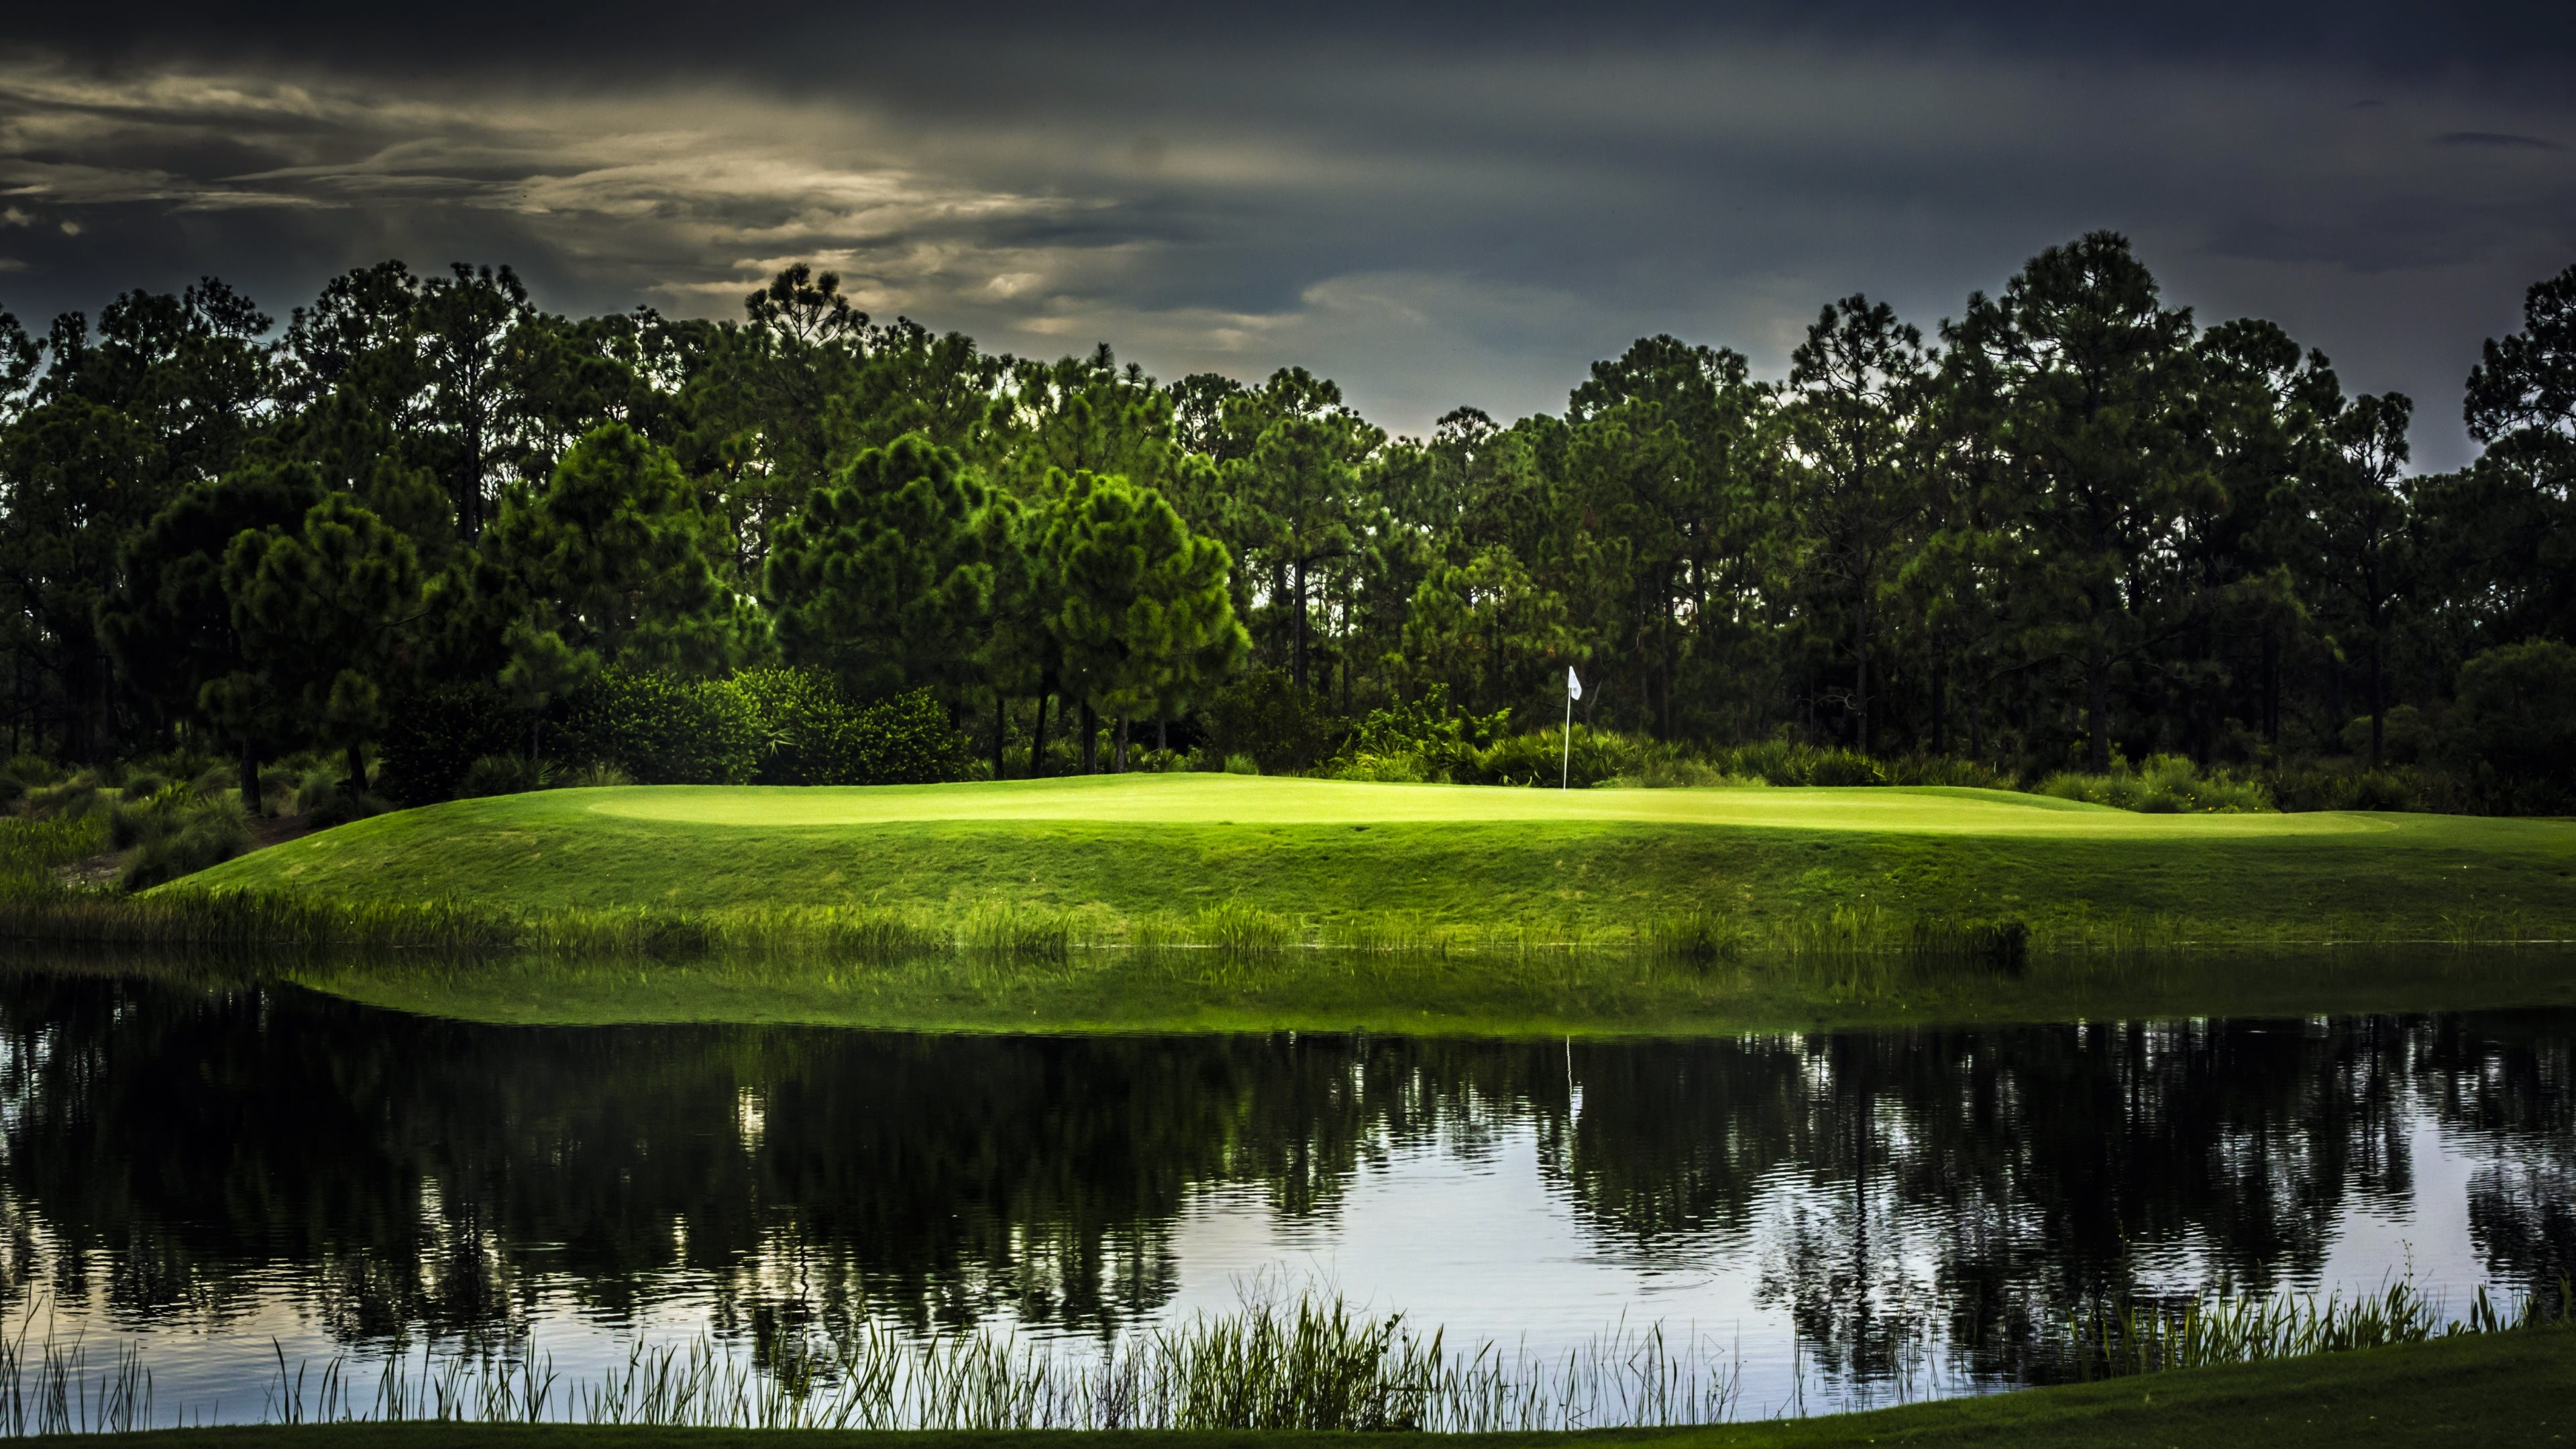 3840x2160 Wallpaper: Old Corkscrew Golf Club. Ultra HD 4K